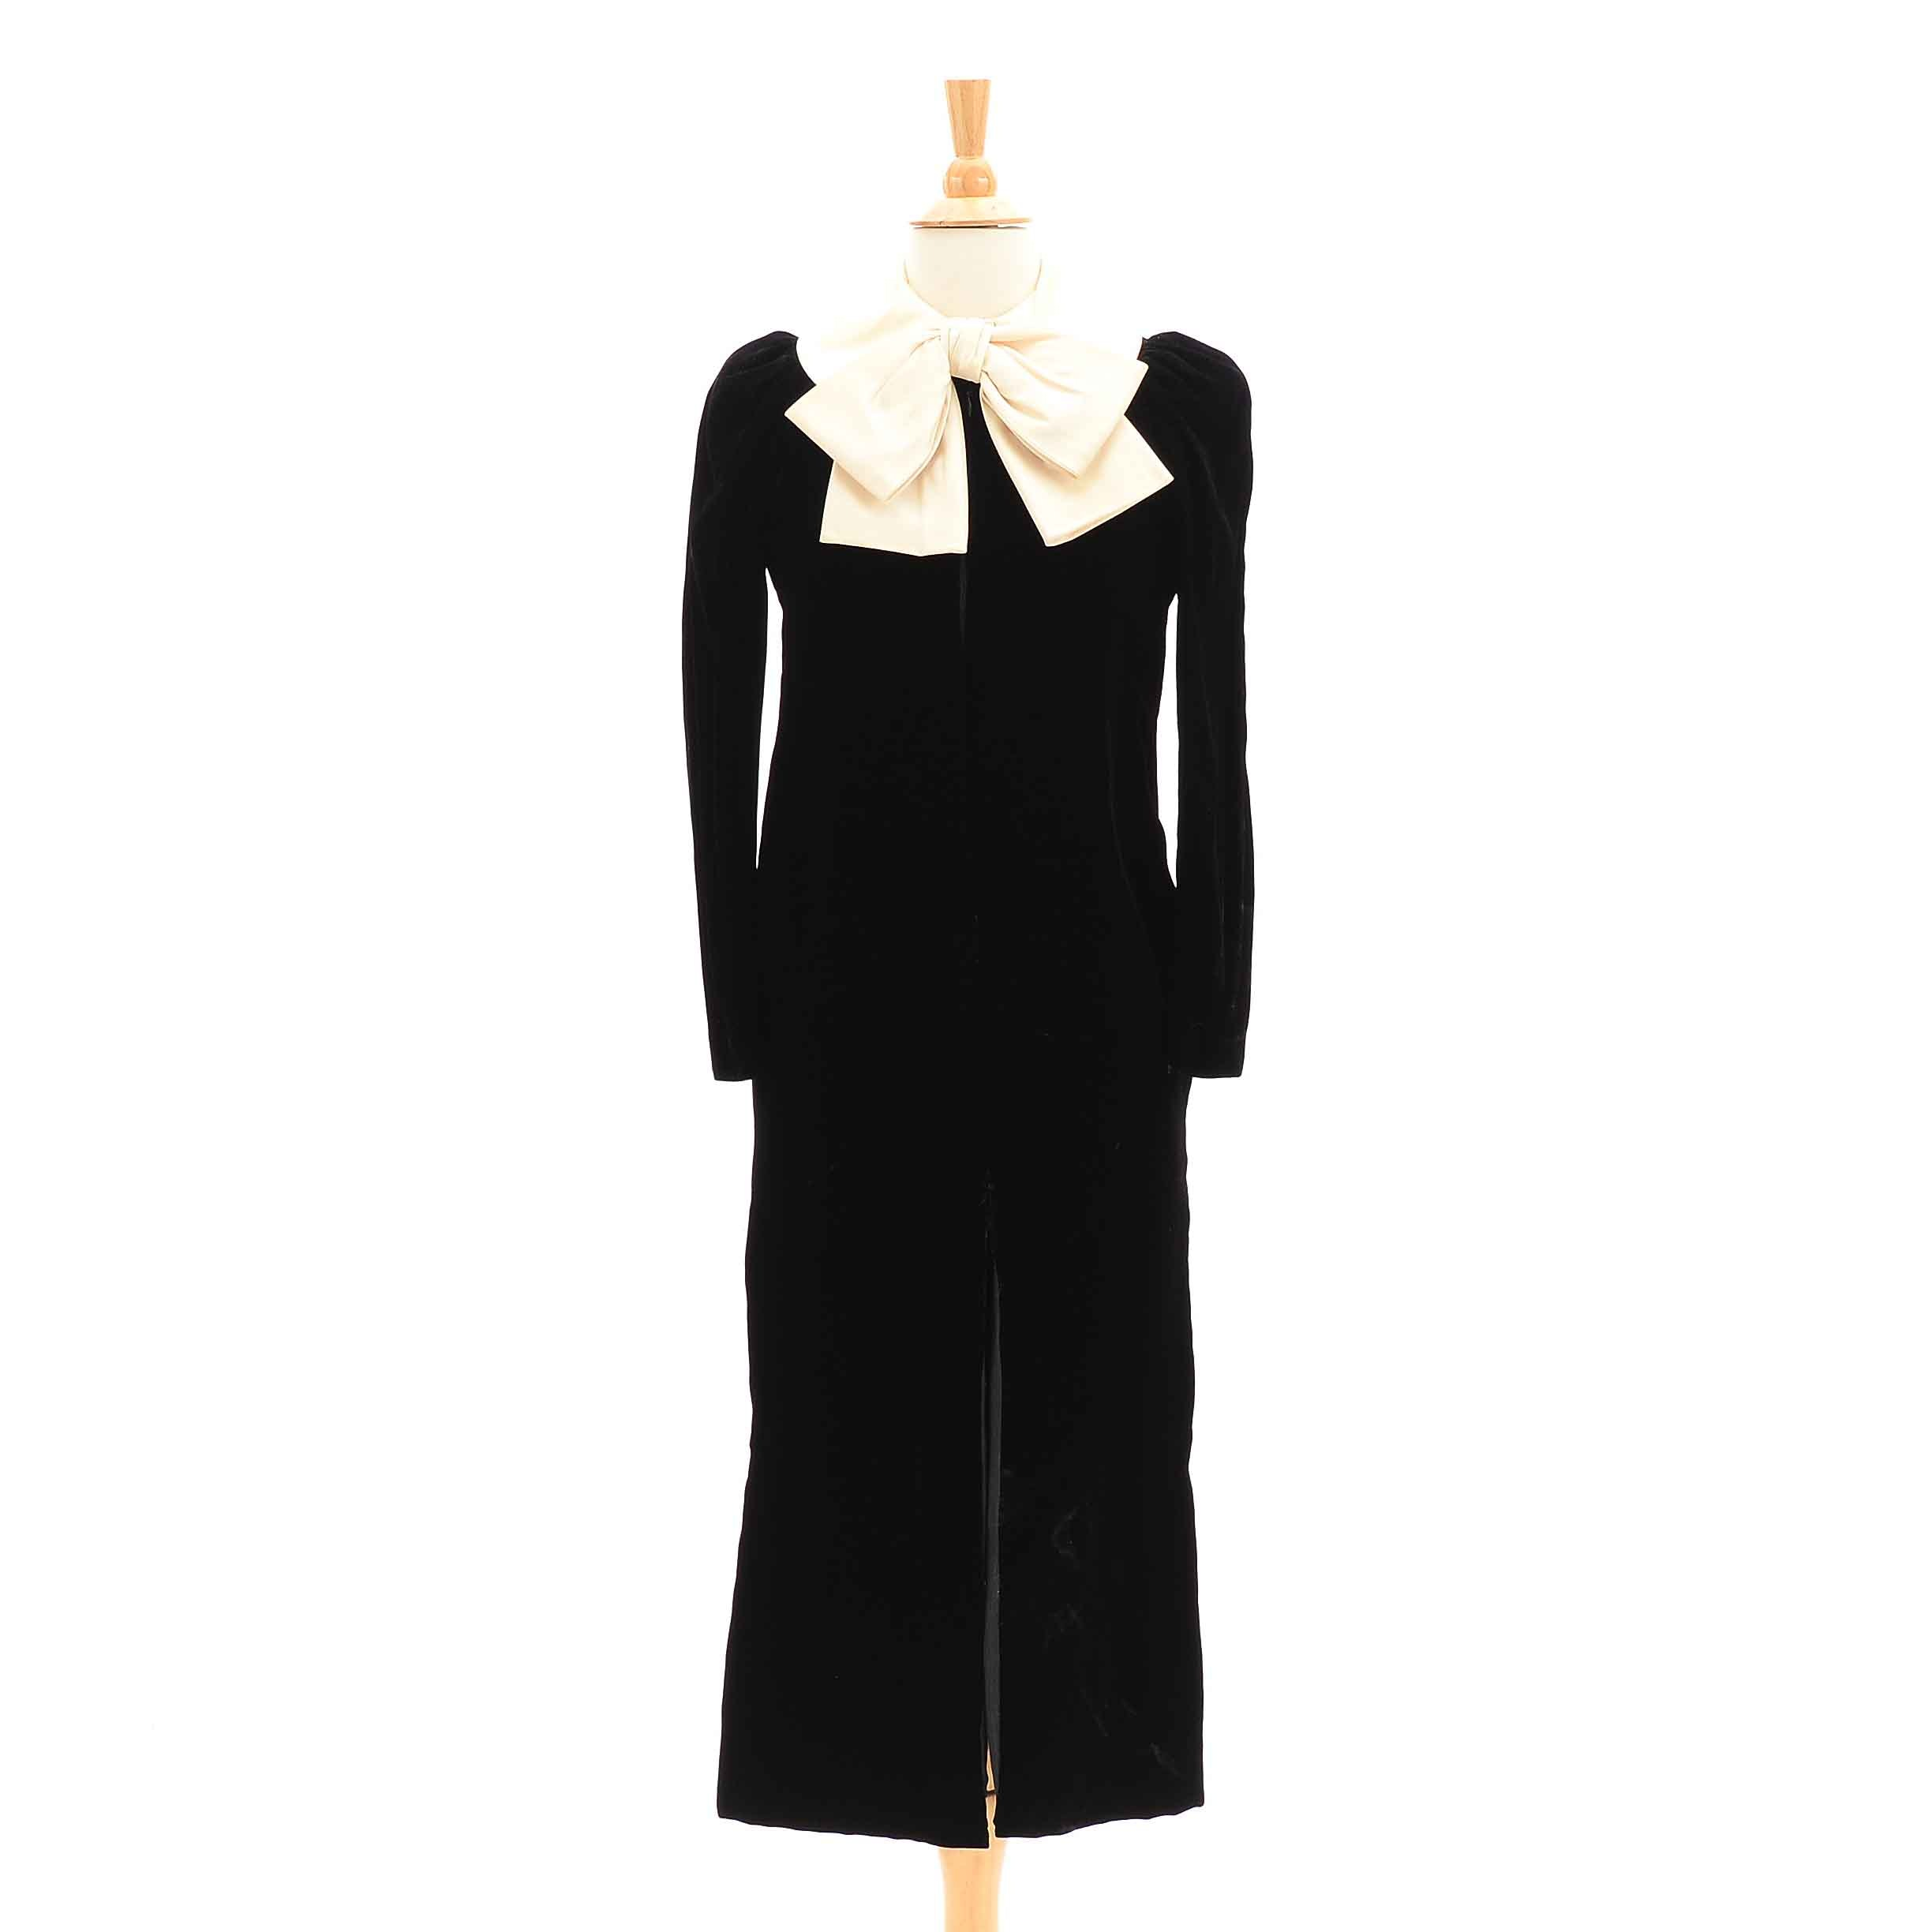 1950s Velvet and Satin Cocktail Dress